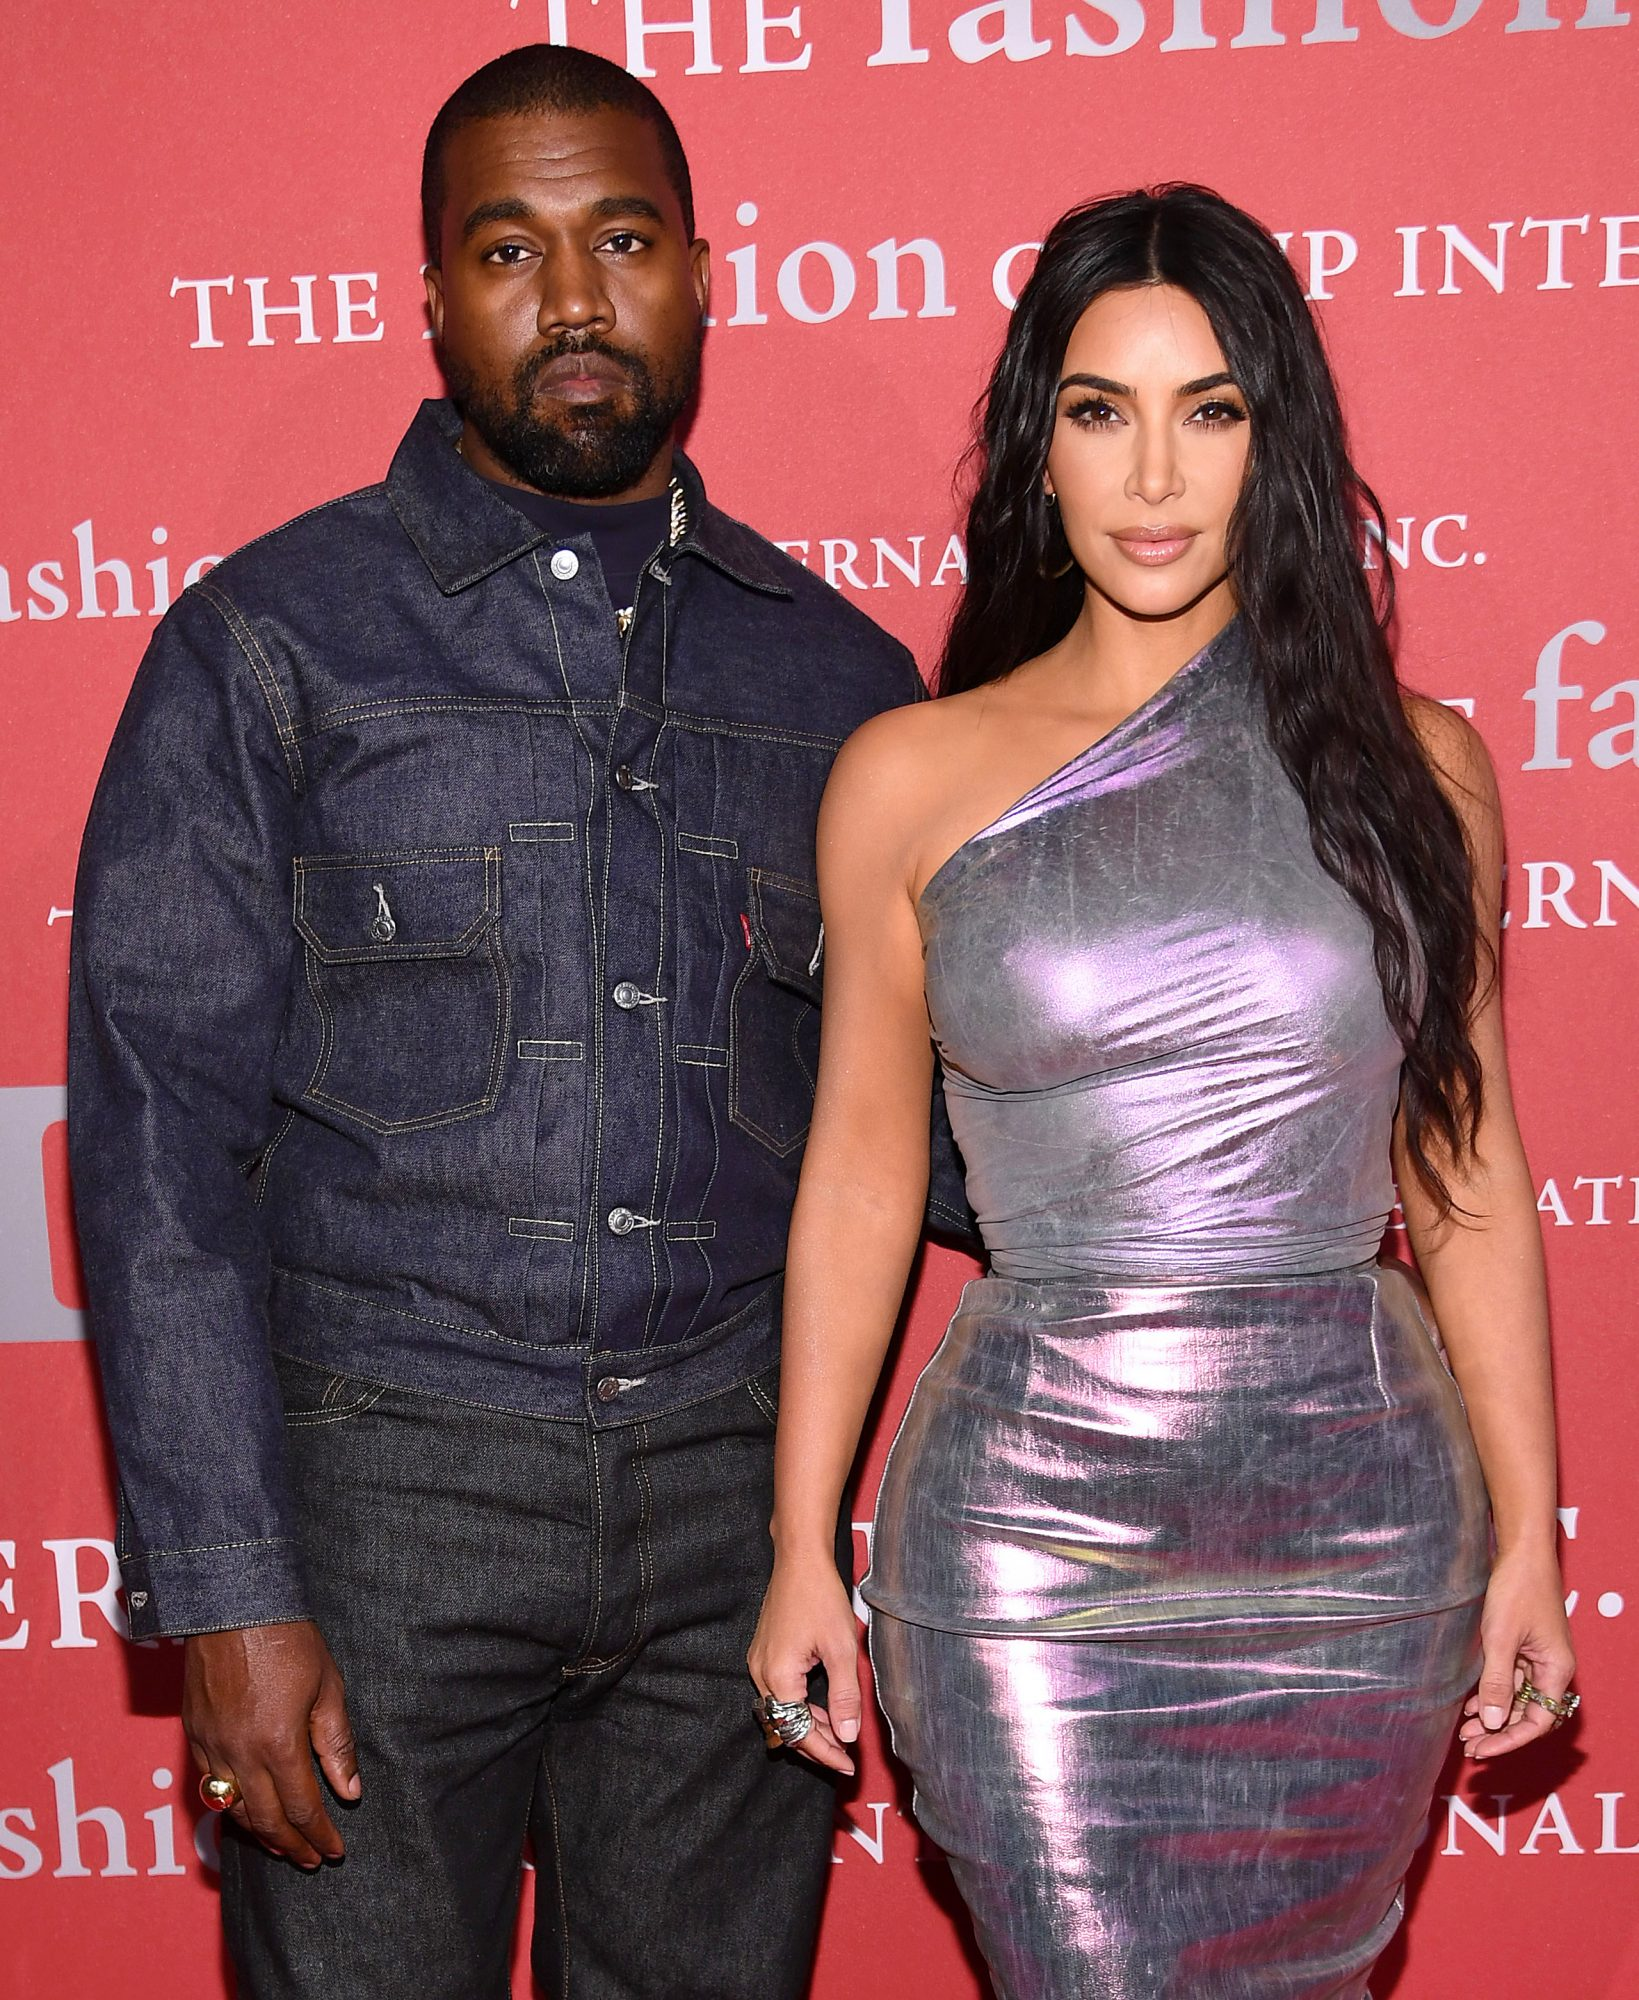 Kanye West and Kim Kardashian West 2019 FGI Night Of Stars Gala